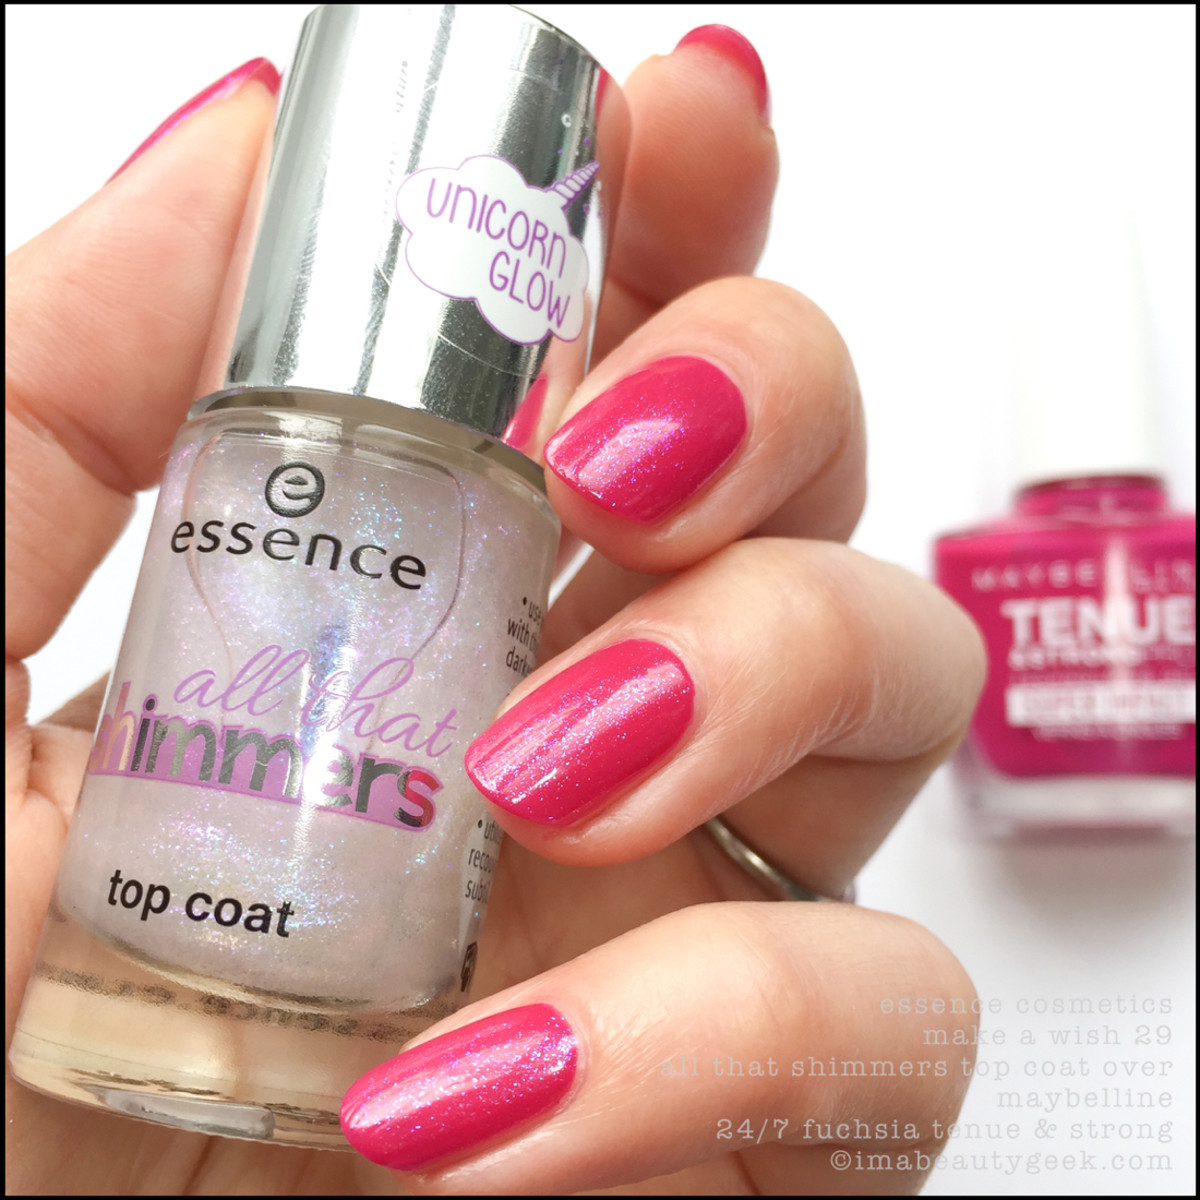 Essence Make a Wish Unicorn Glow over Maybelline 24/7 Fuchsia Tenue and Strong Pro Nail Polish